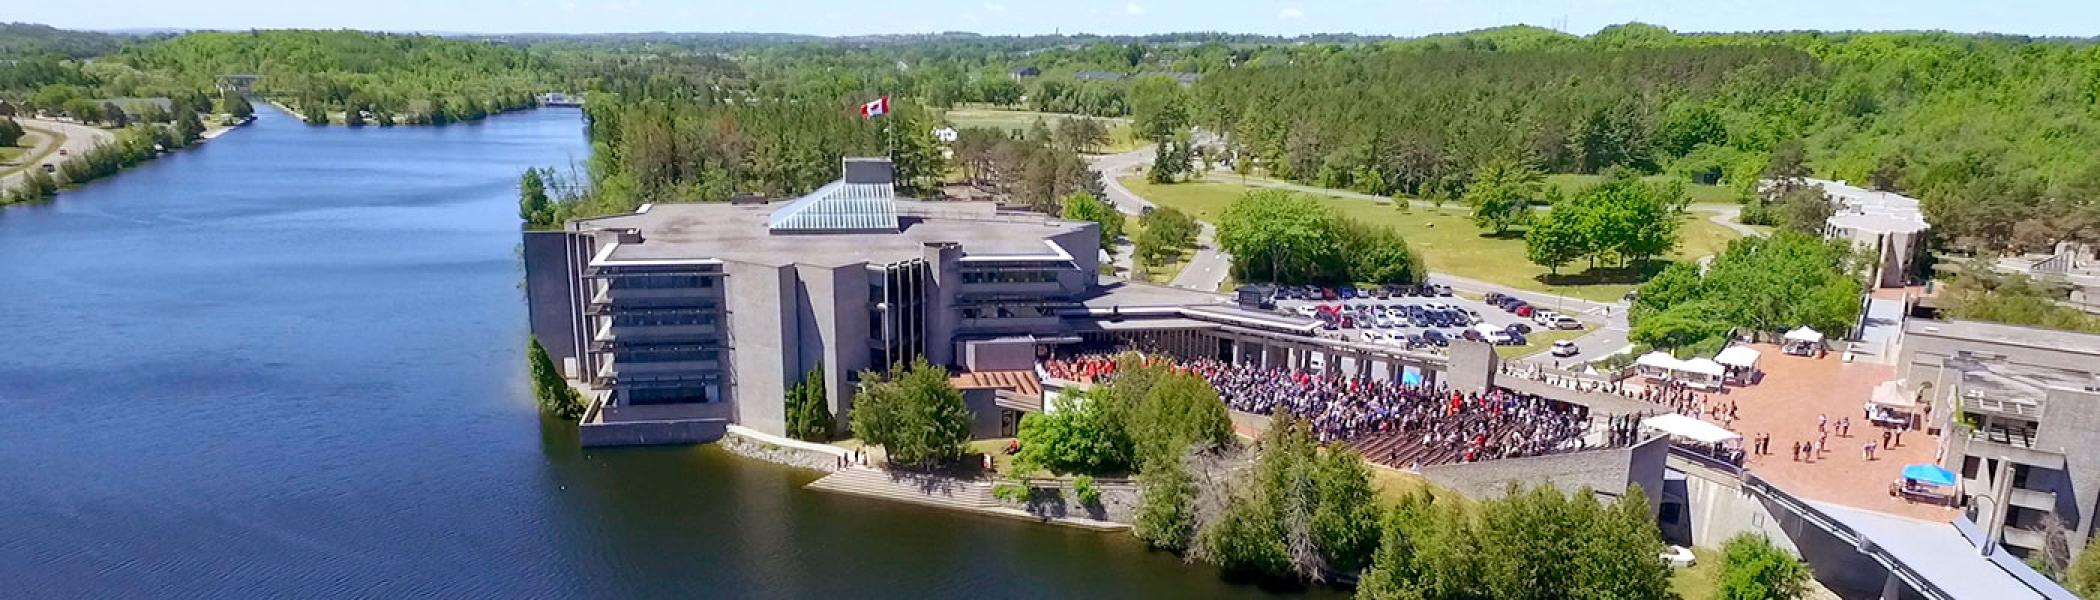 Aerial view of the Bata library at the Symons campus on a sunny summer's morning